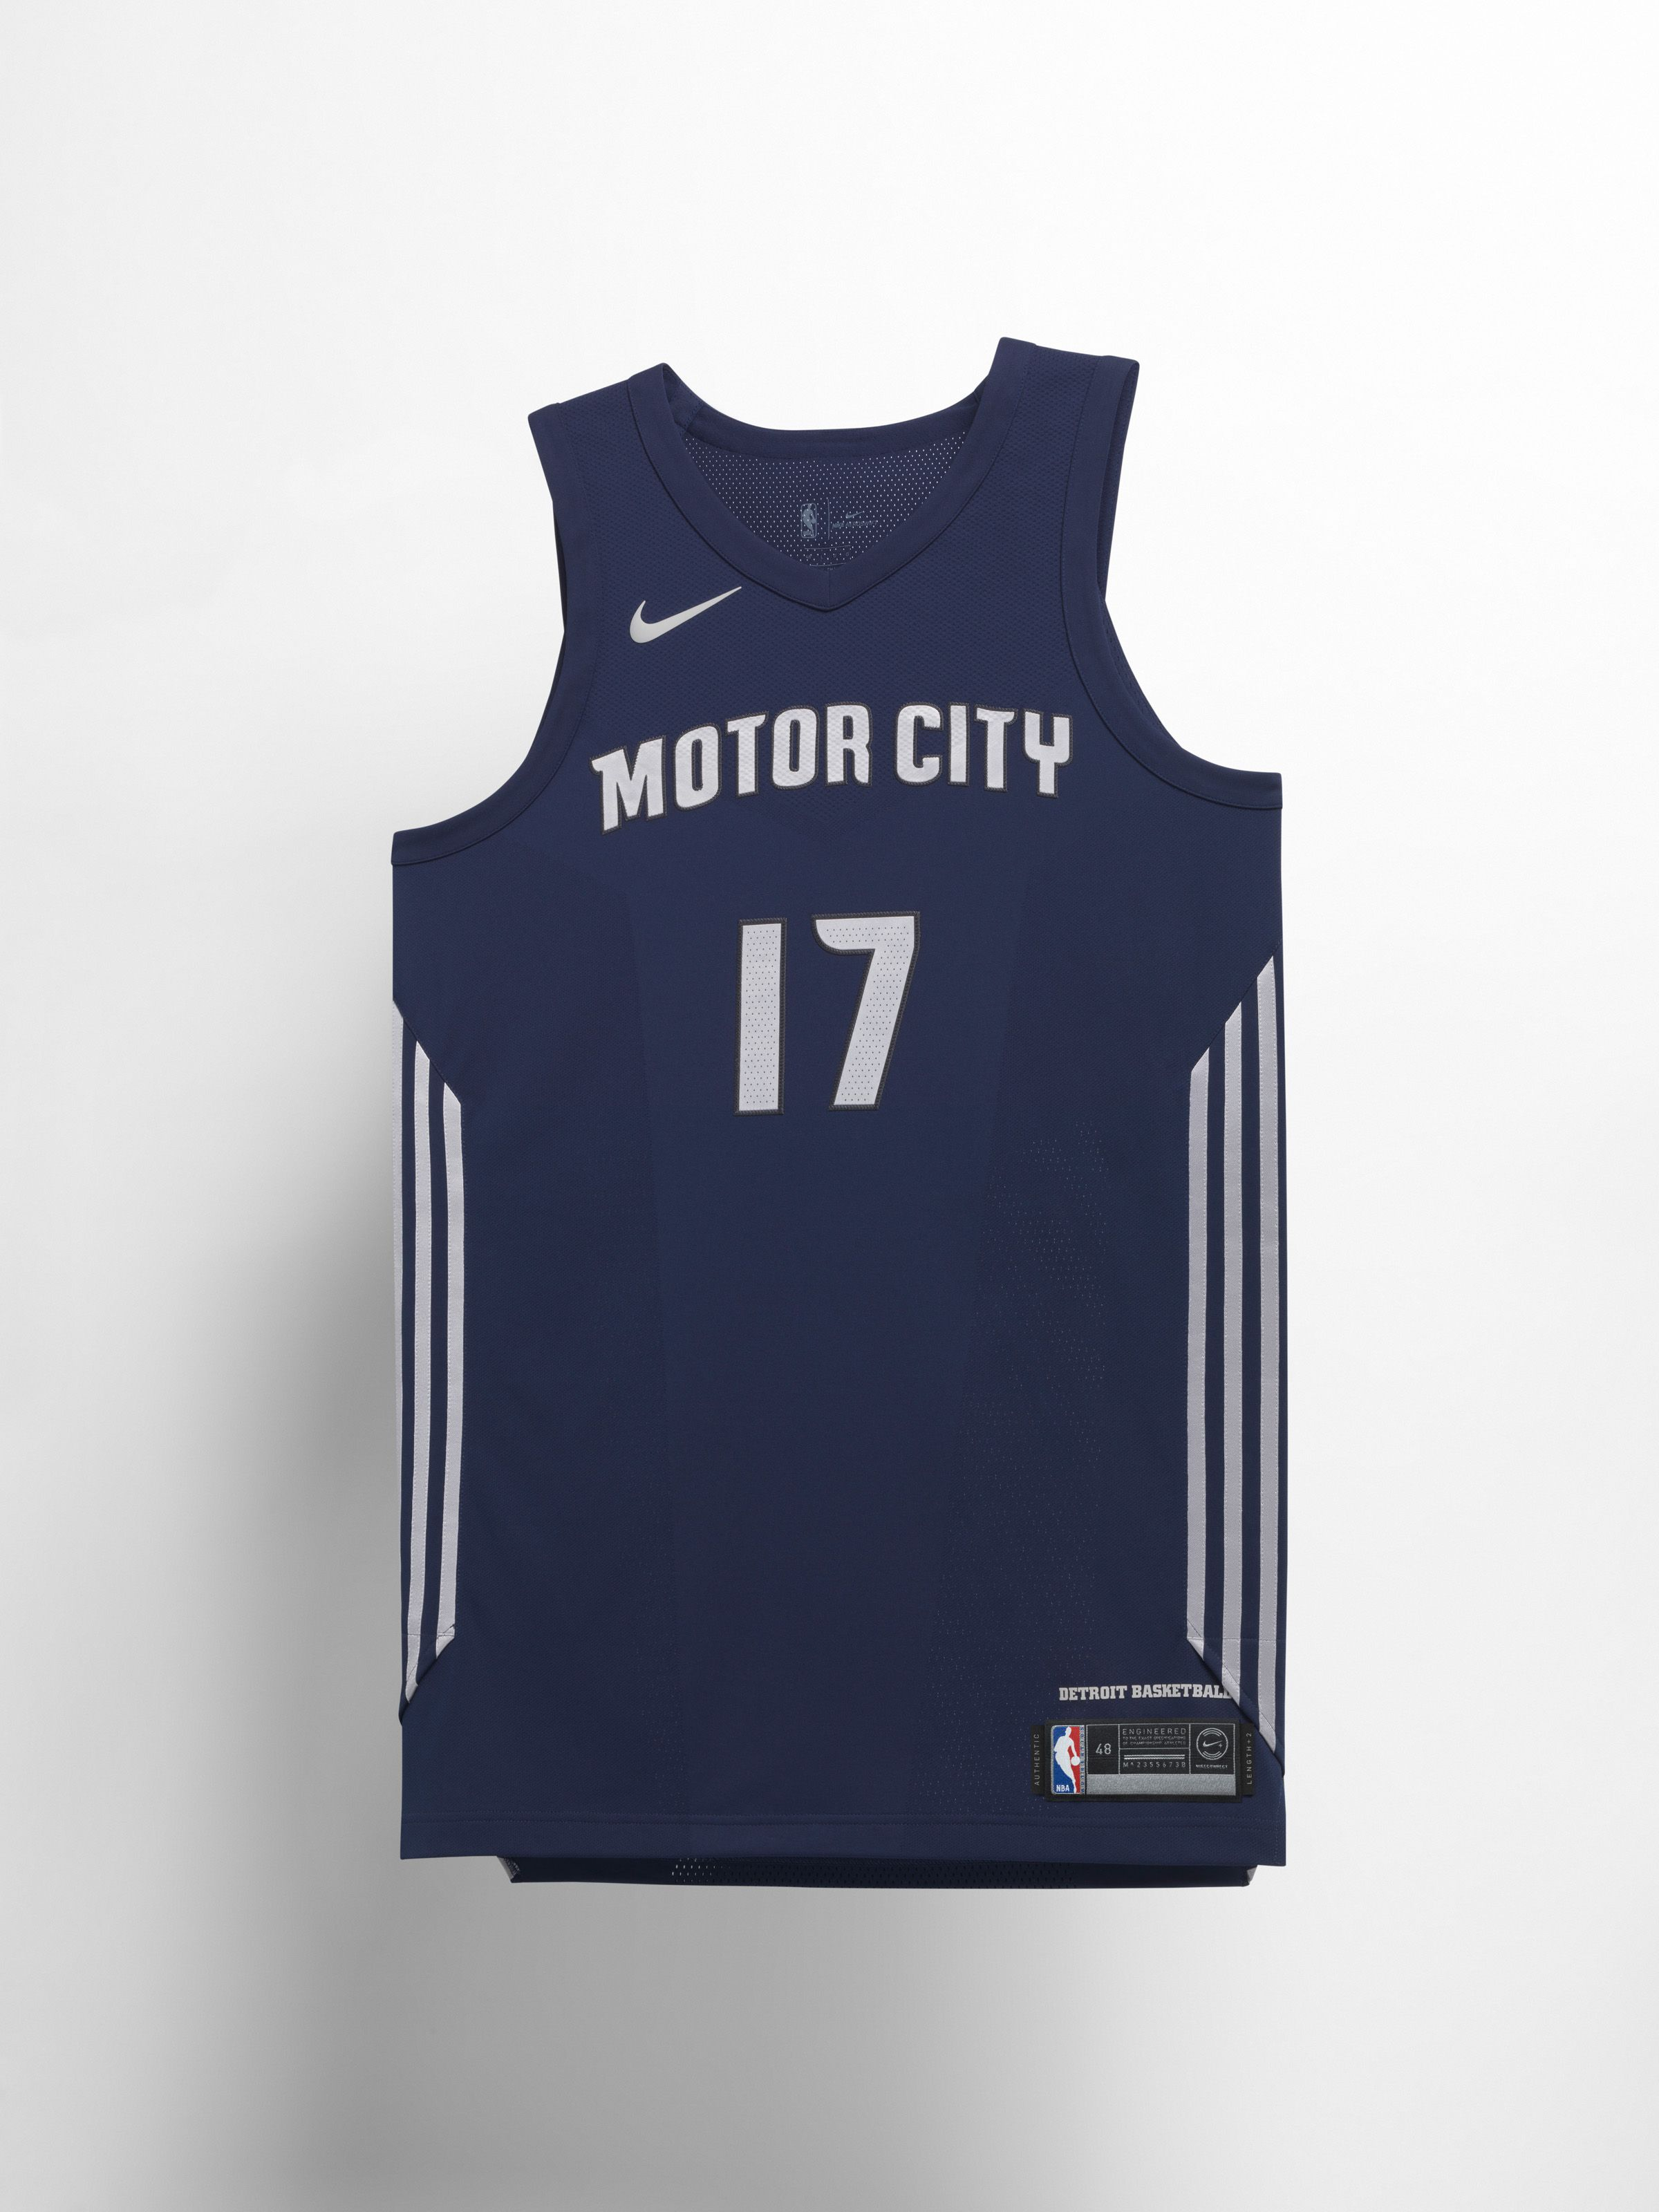 0785a9a4c7a Detroit Pistons | Cool stuff | Nike nba jerseys, Nba uniforms ...